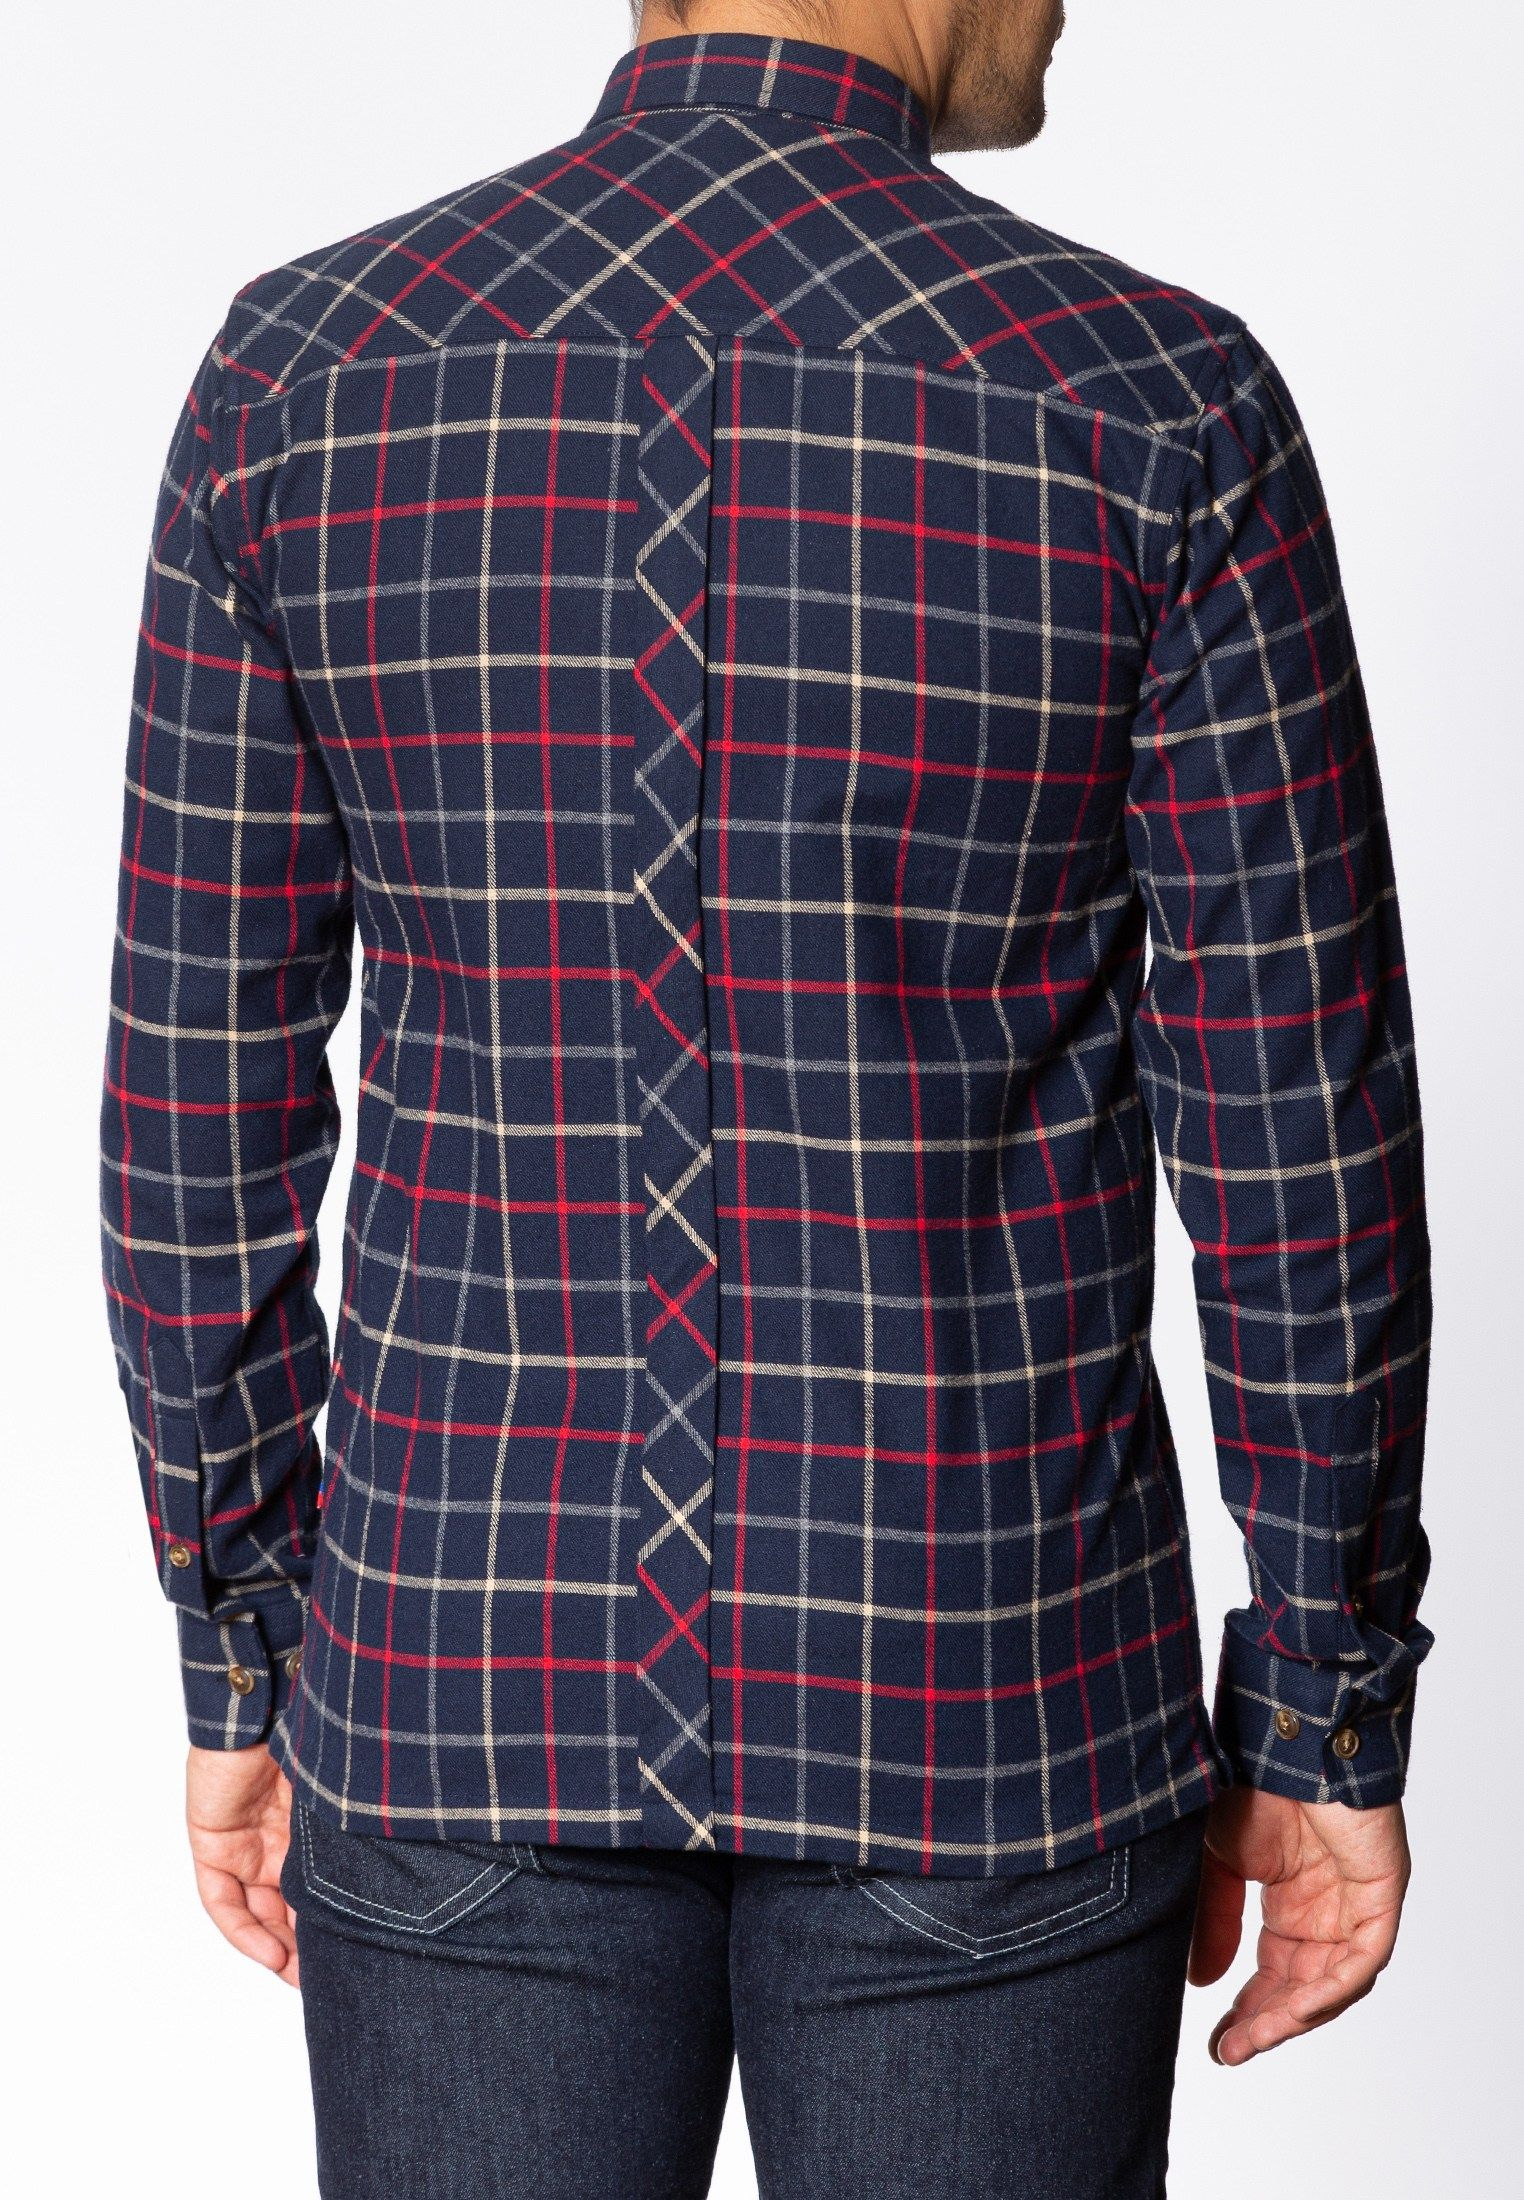 Quarry Mens Long Sleeve Flannel Shirt With Large Check Pattern In Navy